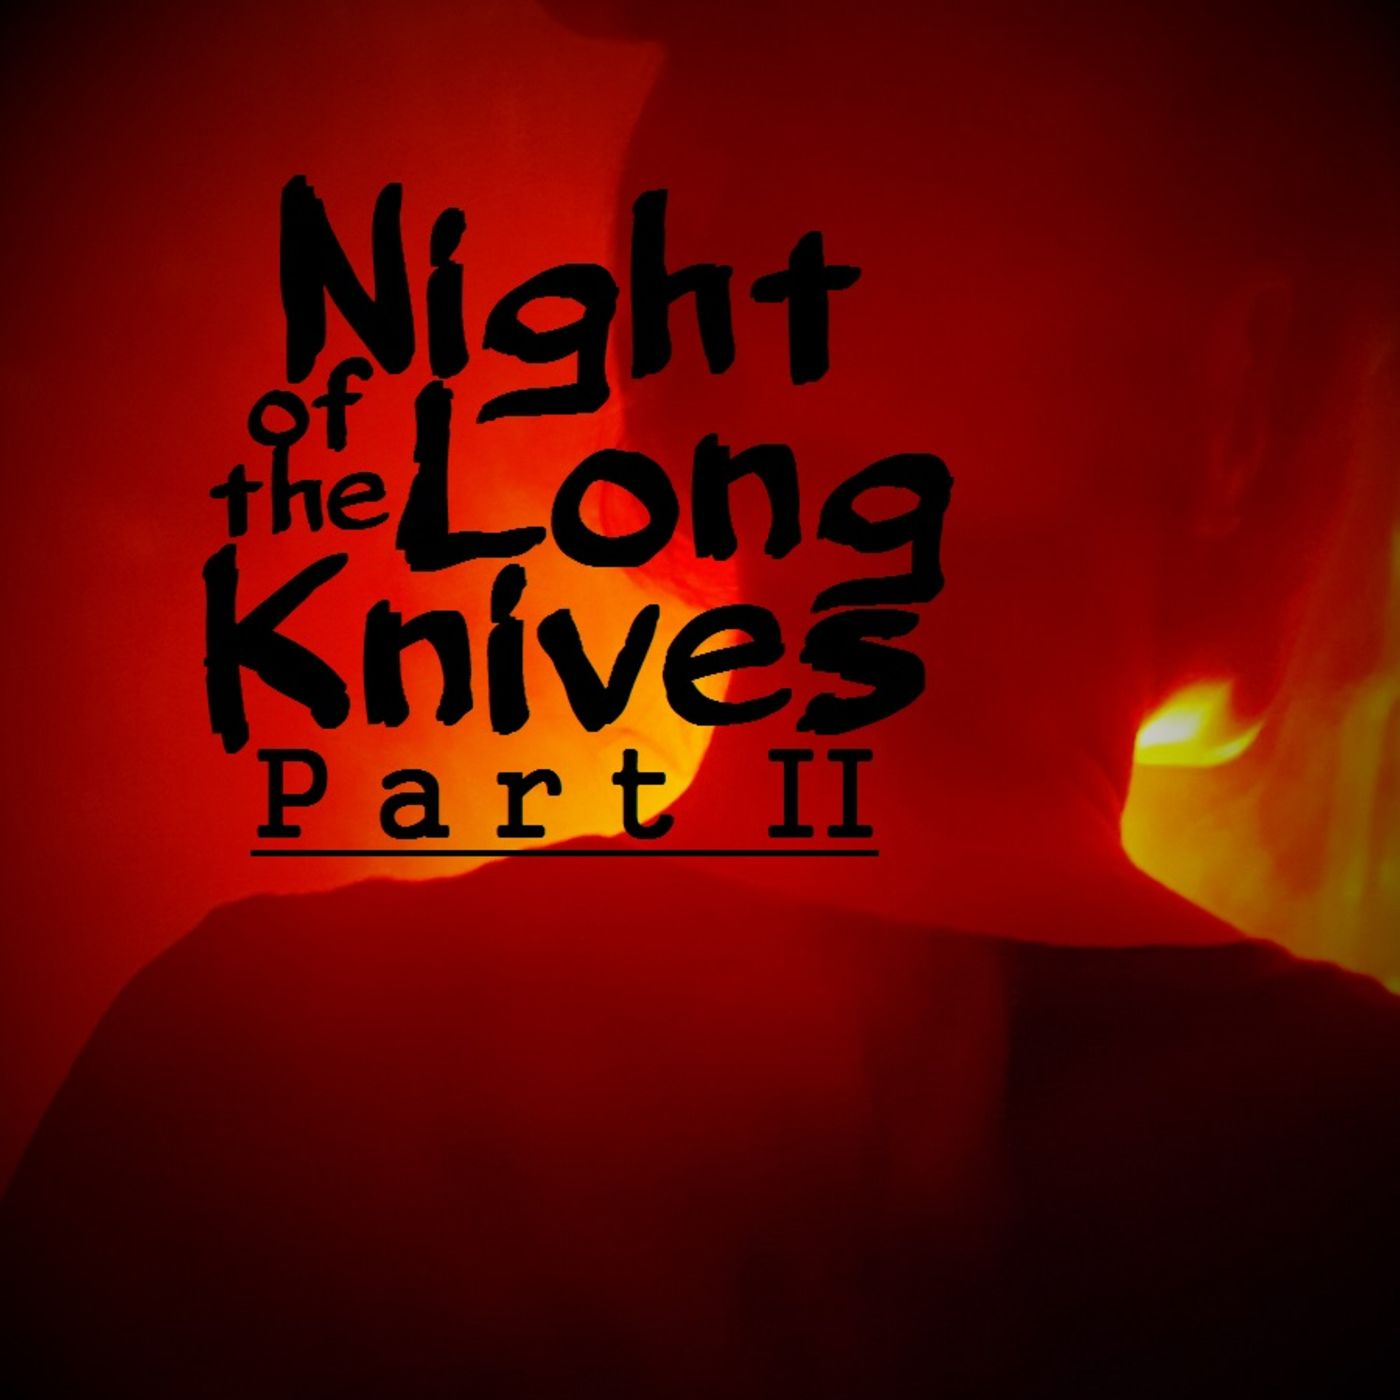 Night of the Long Knives Part II